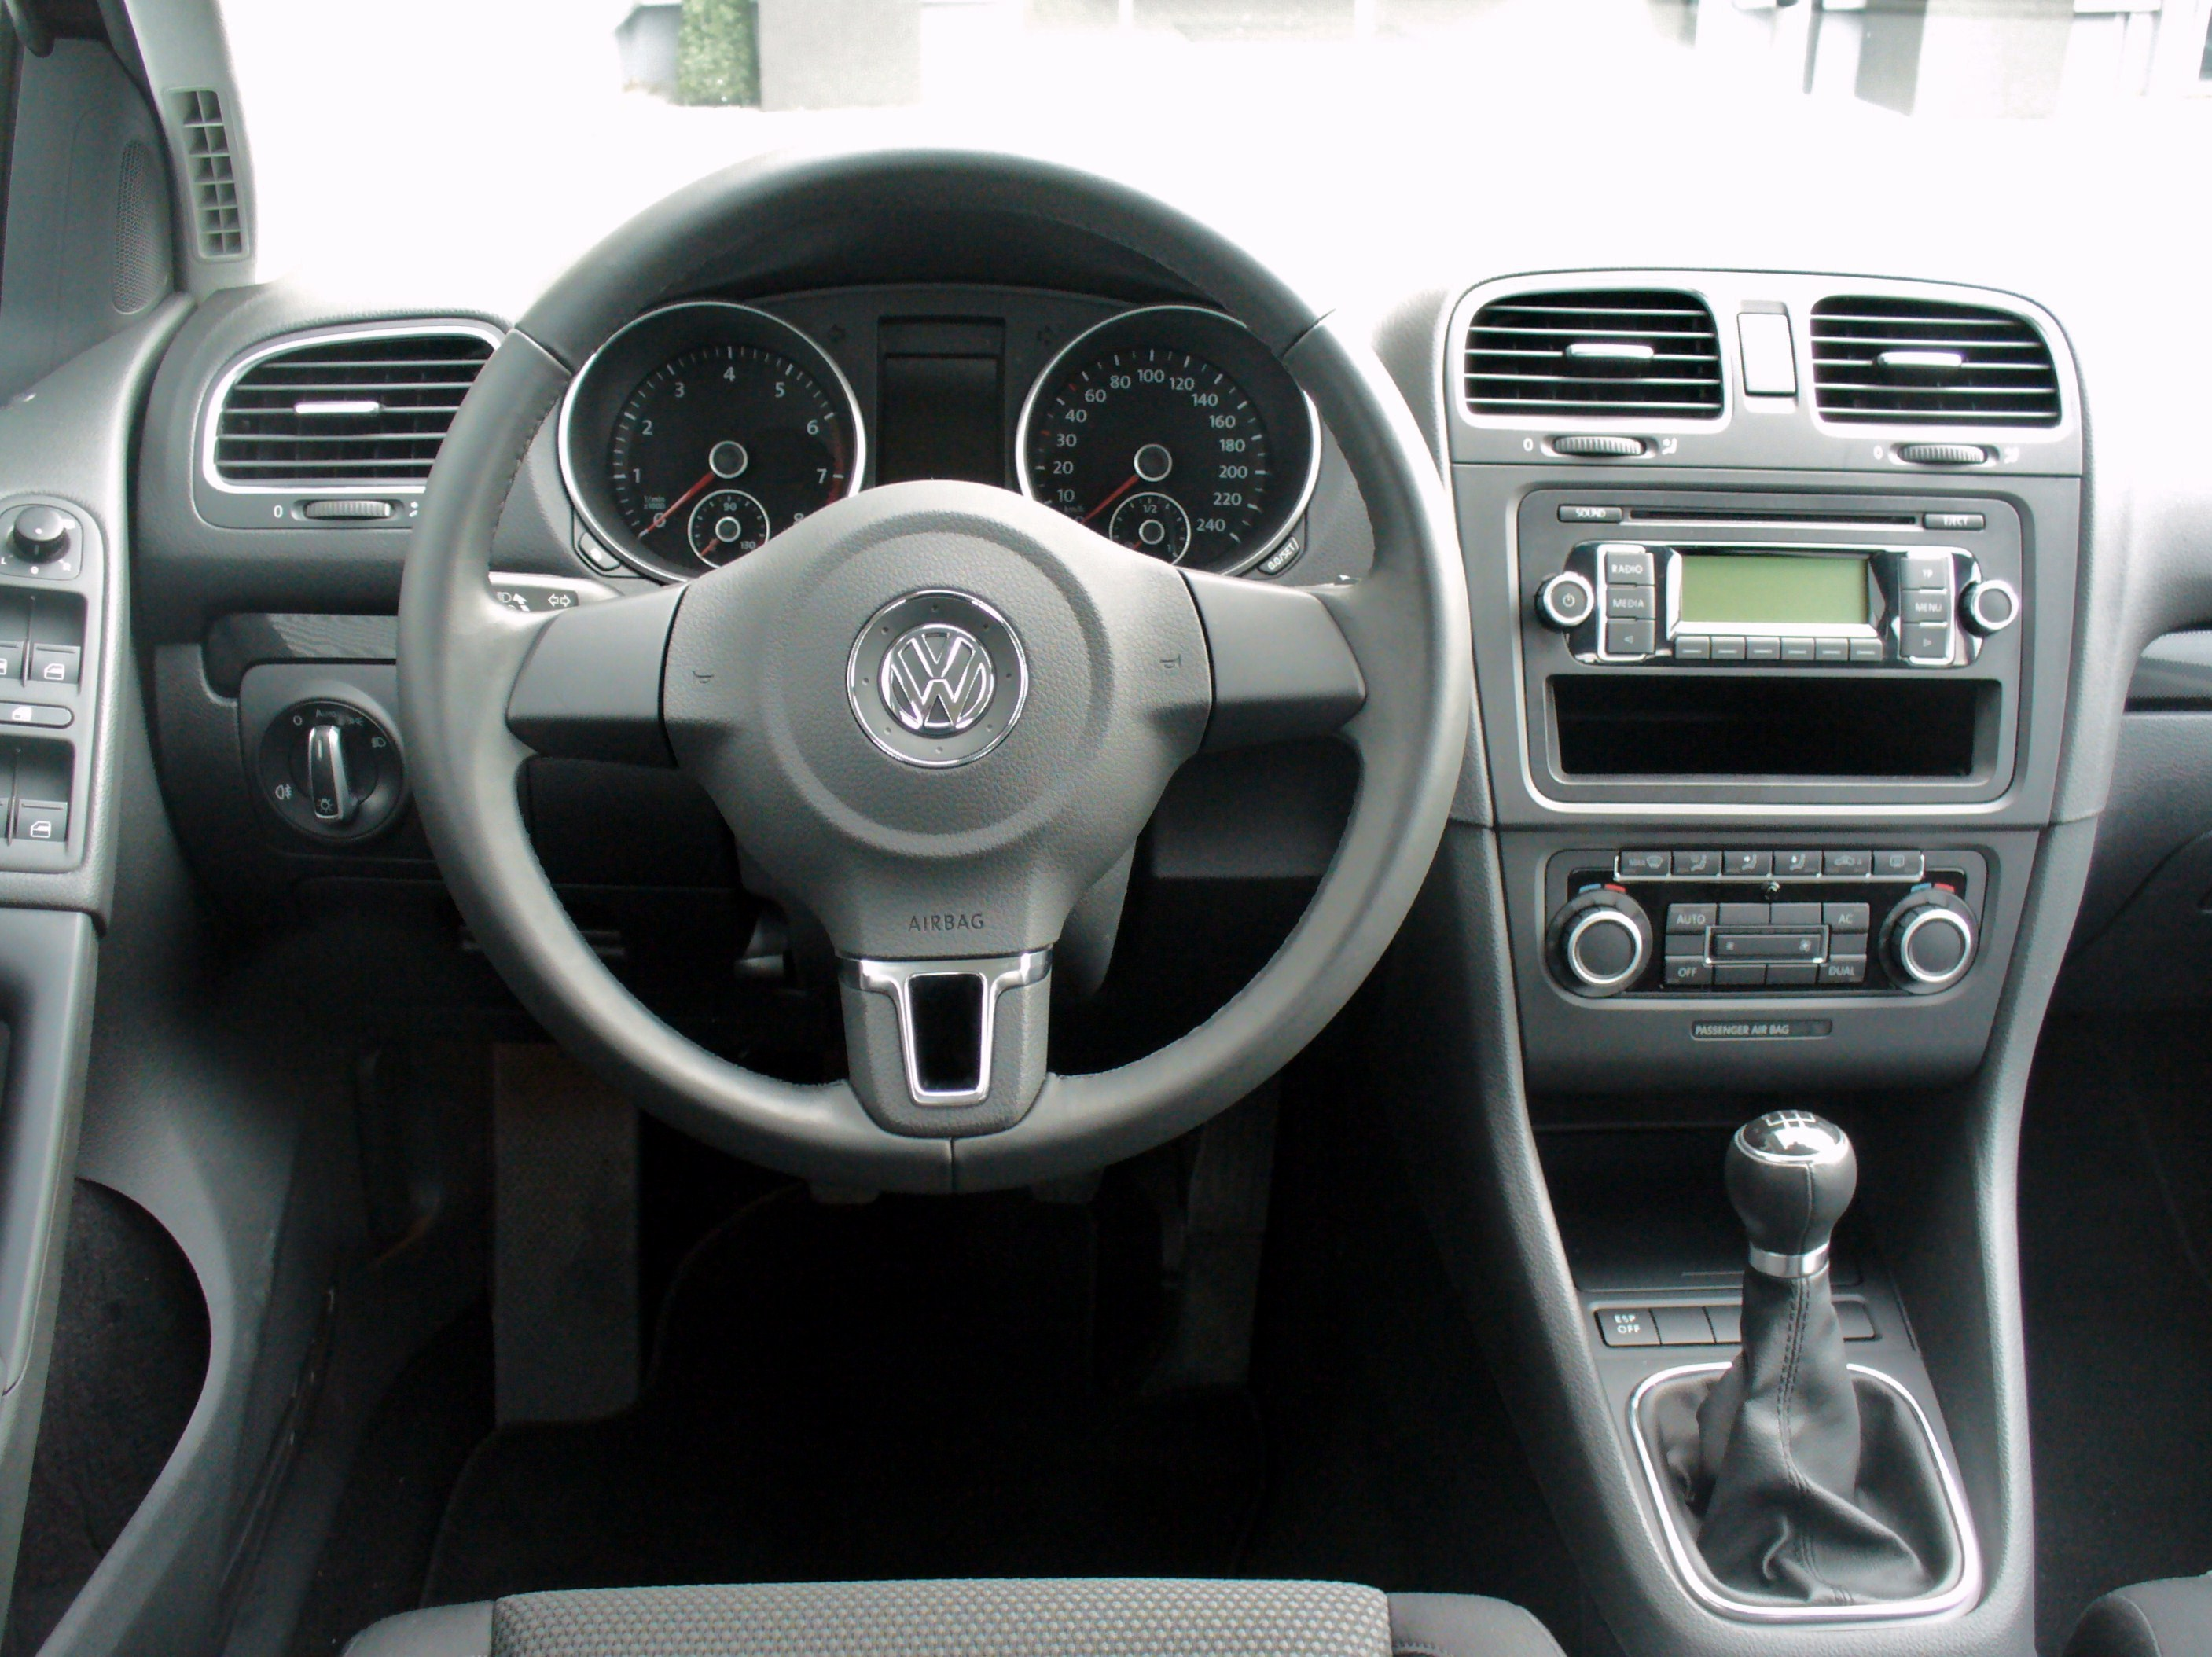 file vw golf vi 1 6 comfortline deep black interieur jpg wikimedia commons. Black Bedroom Furniture Sets. Home Design Ideas